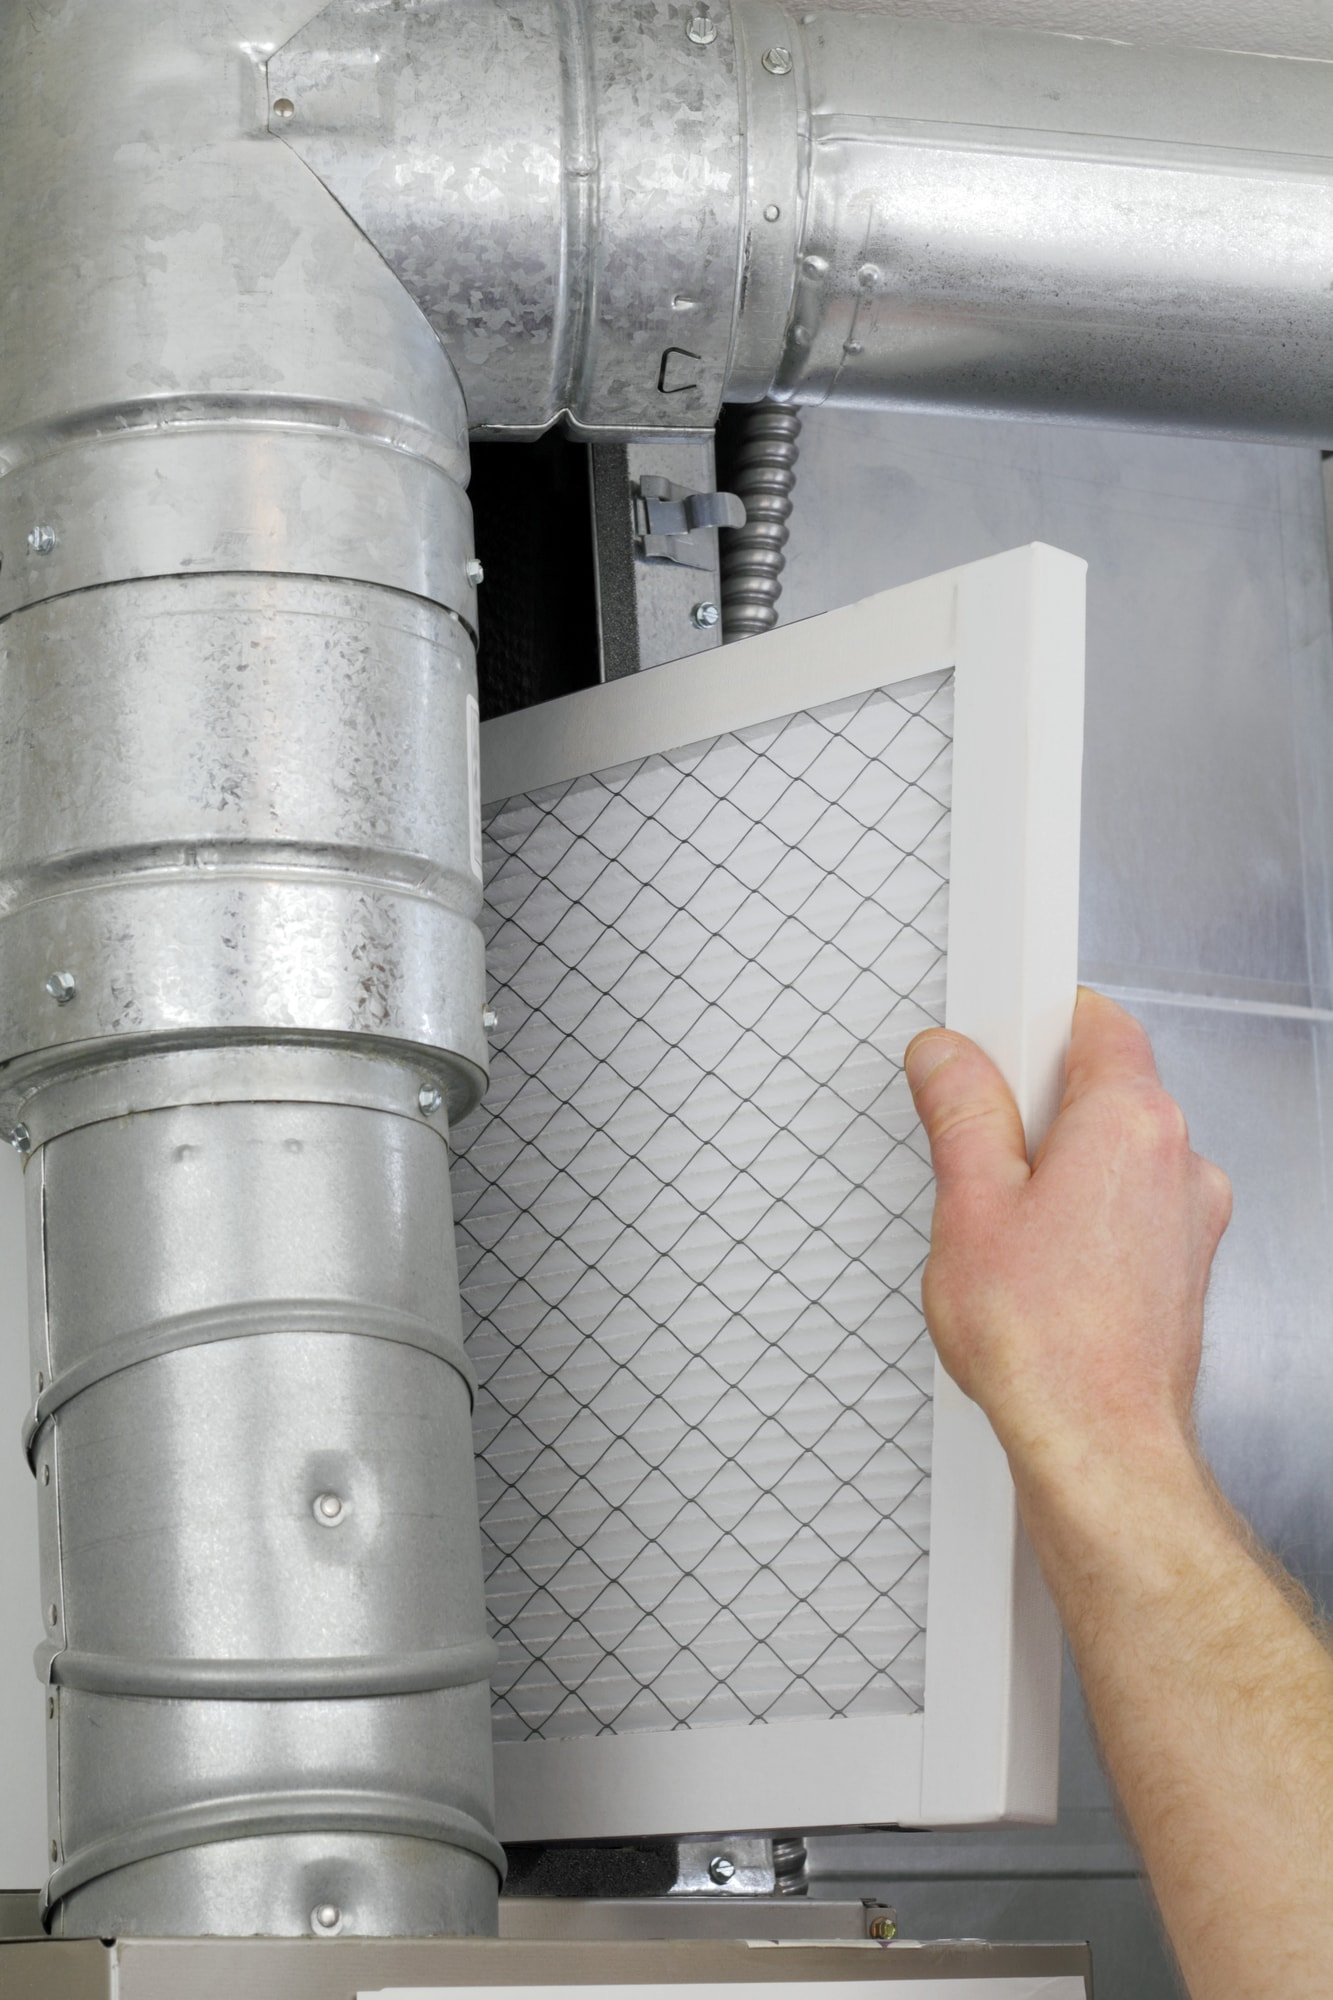 A man's arm and hand seen replacing disposable air filter in home central air furnace.